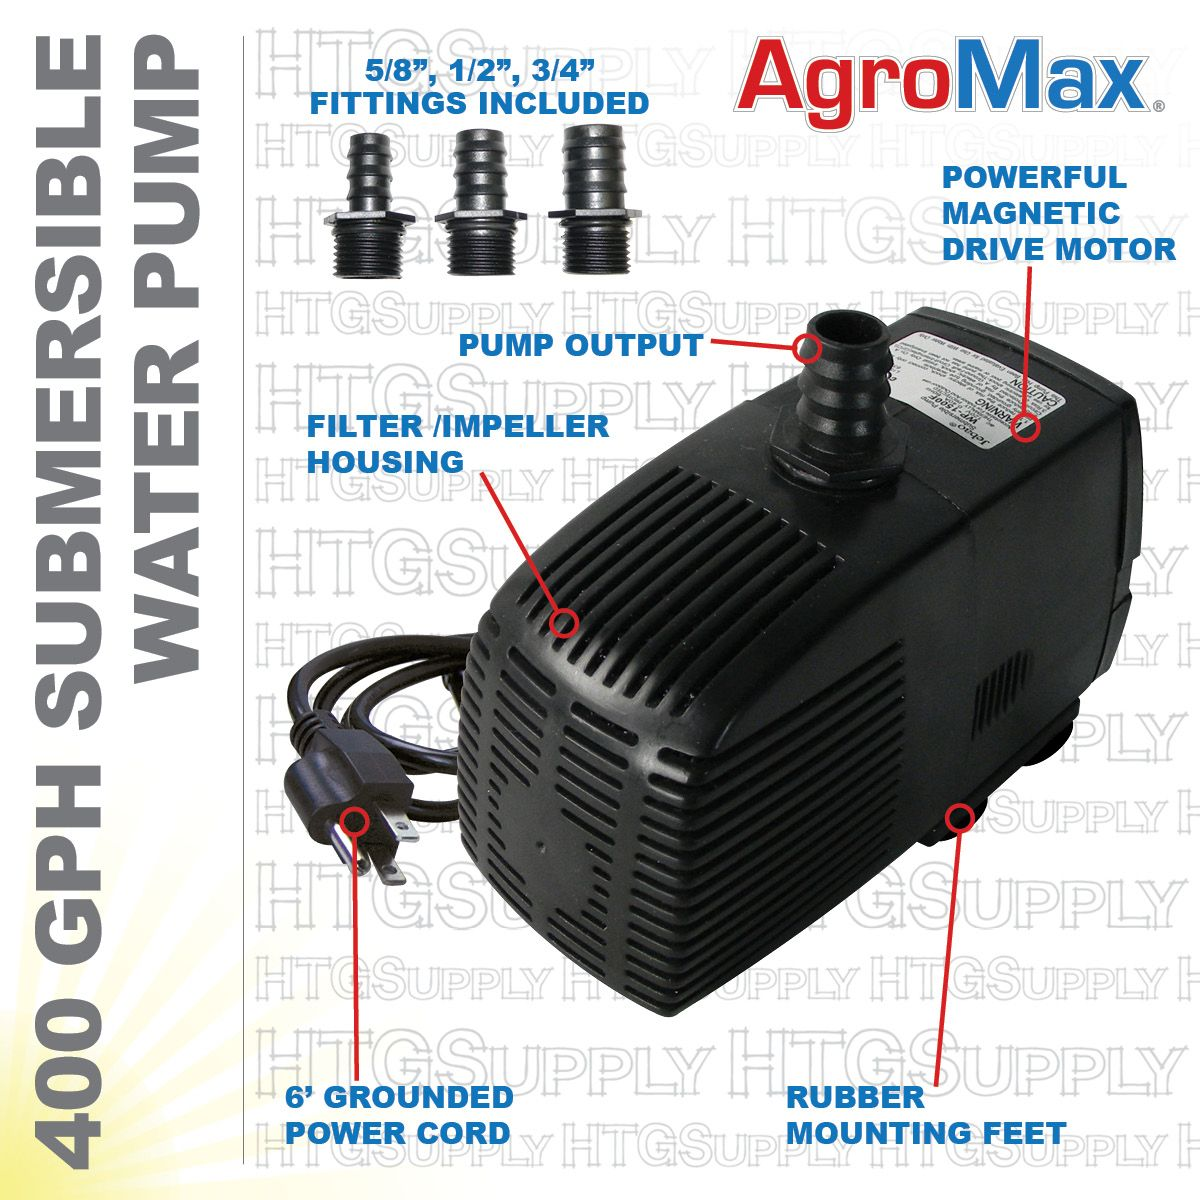 400 Gph Submersible Pump Submersible Pump Submersible Hydroponics System